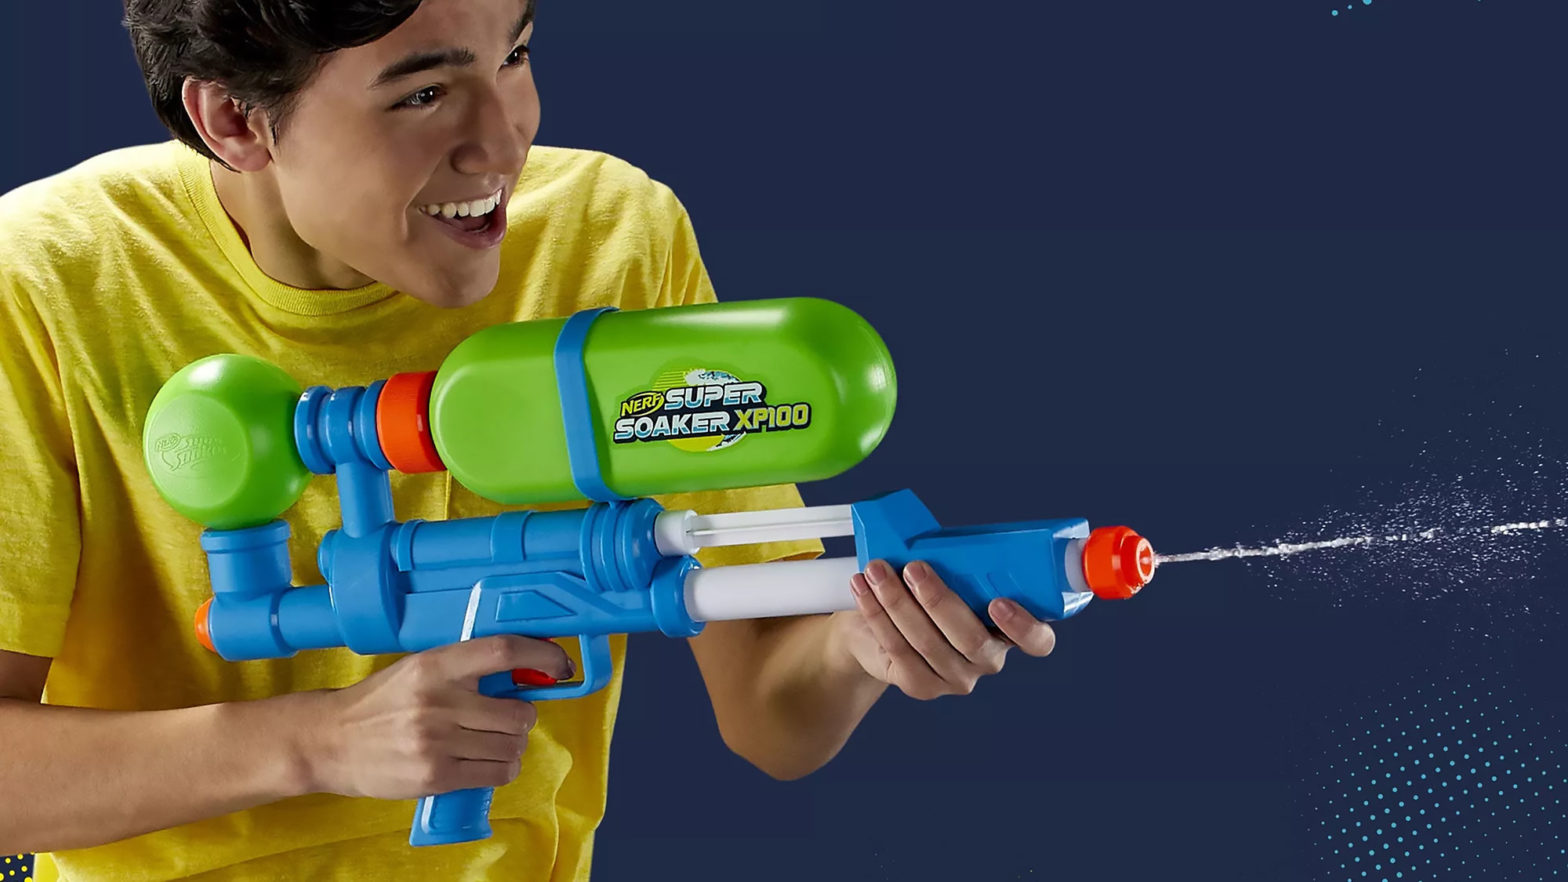 Hasbro NERF Super Soaker XP100